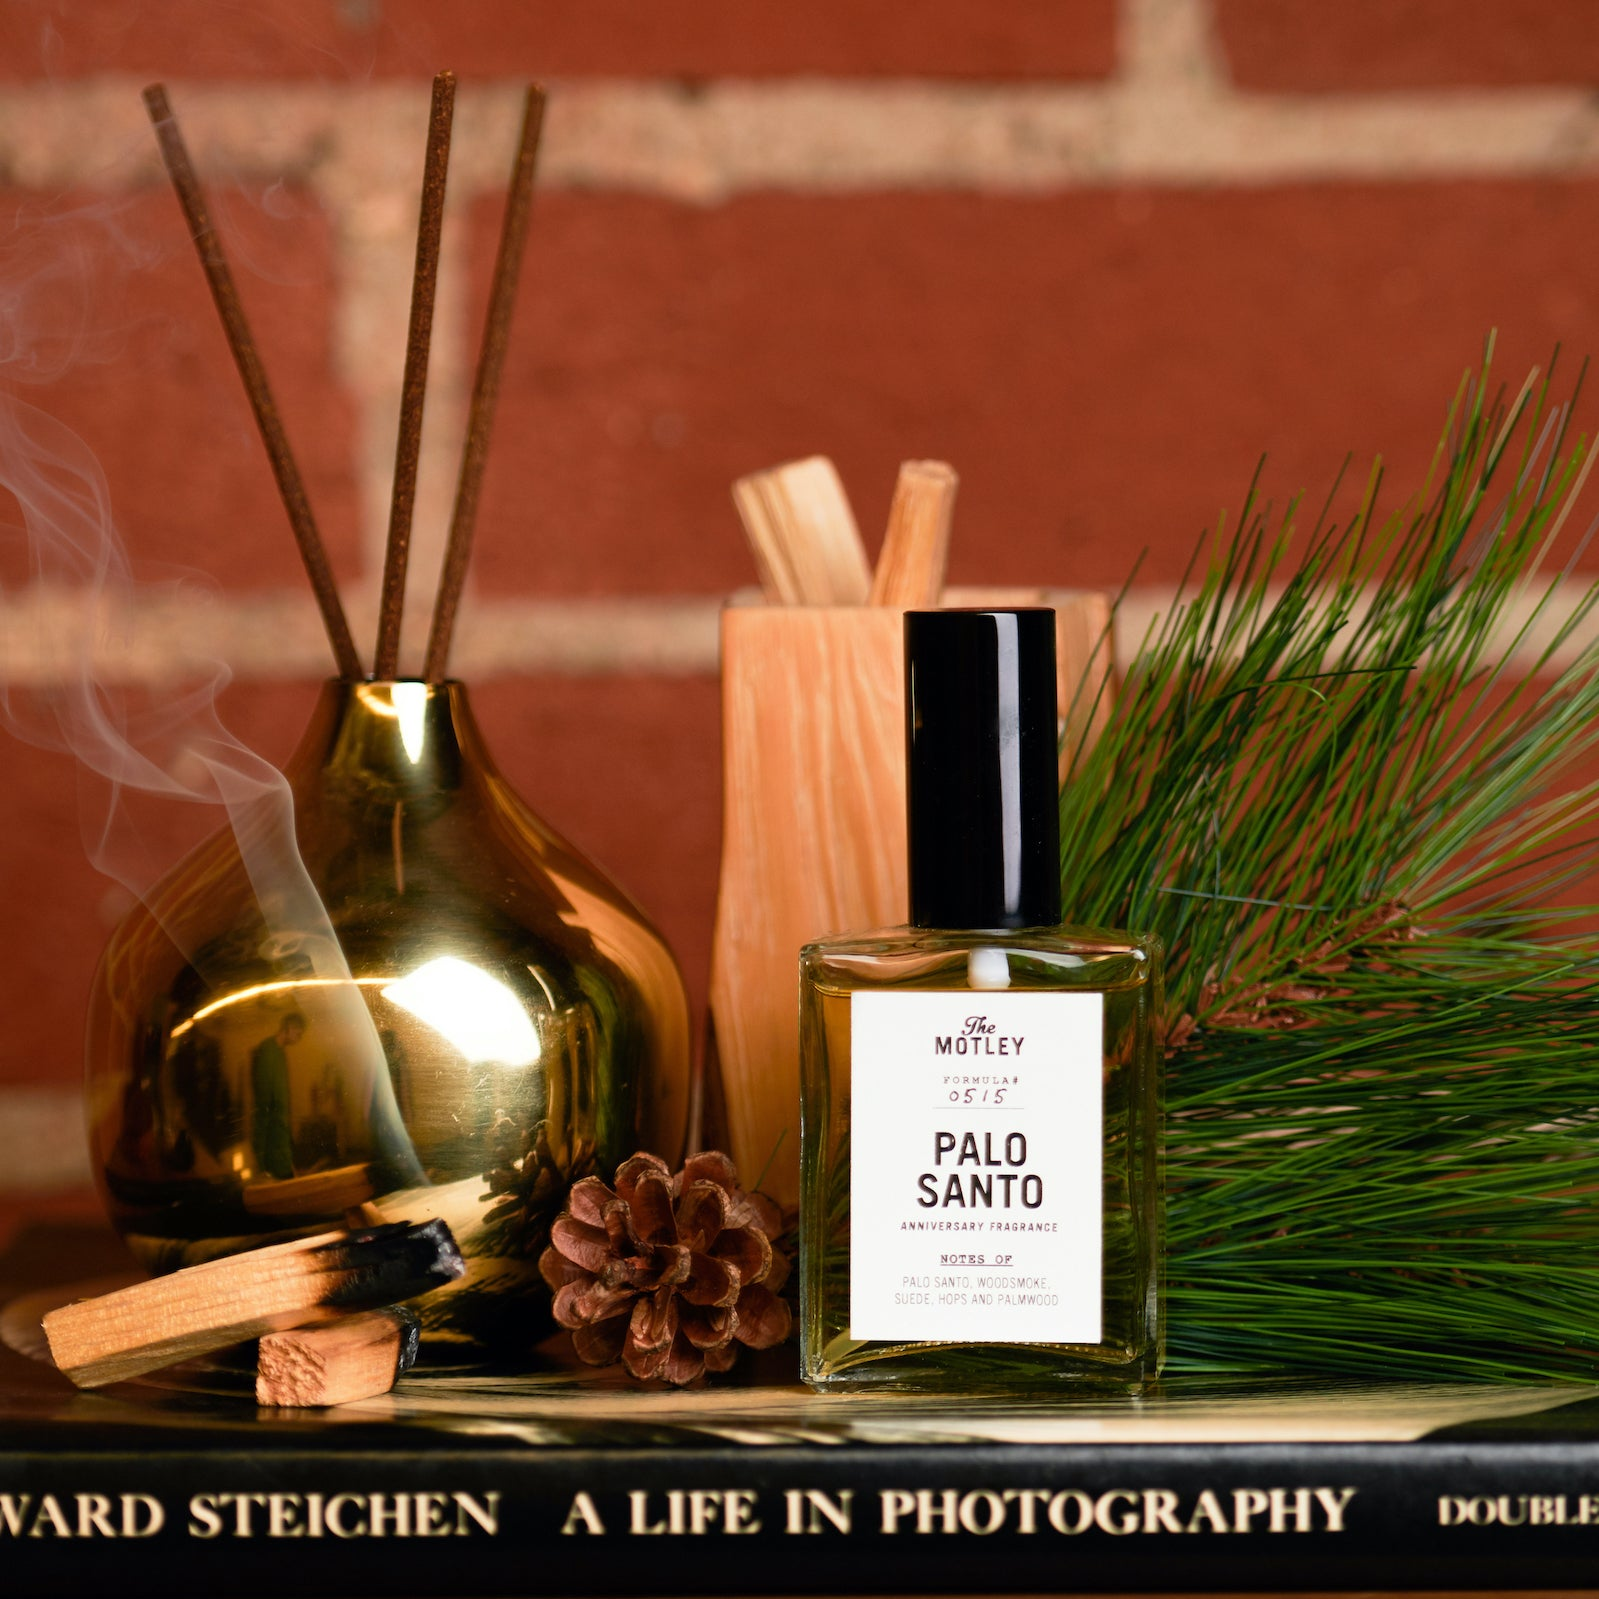 The Motley Palo Santo Cologne - The Motley